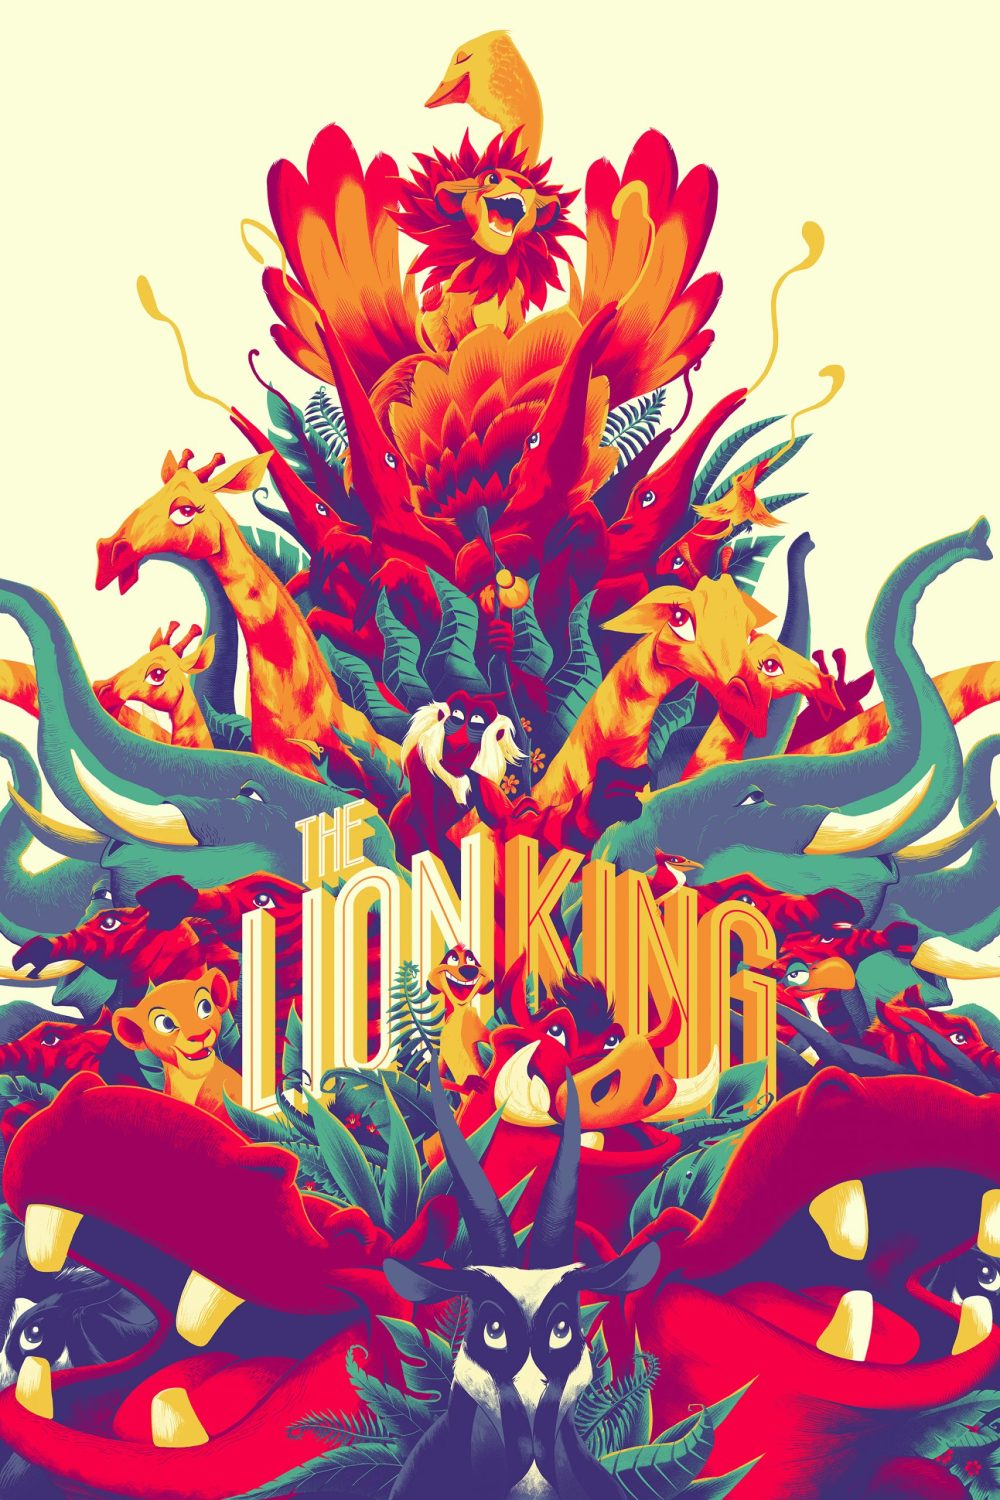 'The Lion King' by Matt Taylor for Mondo